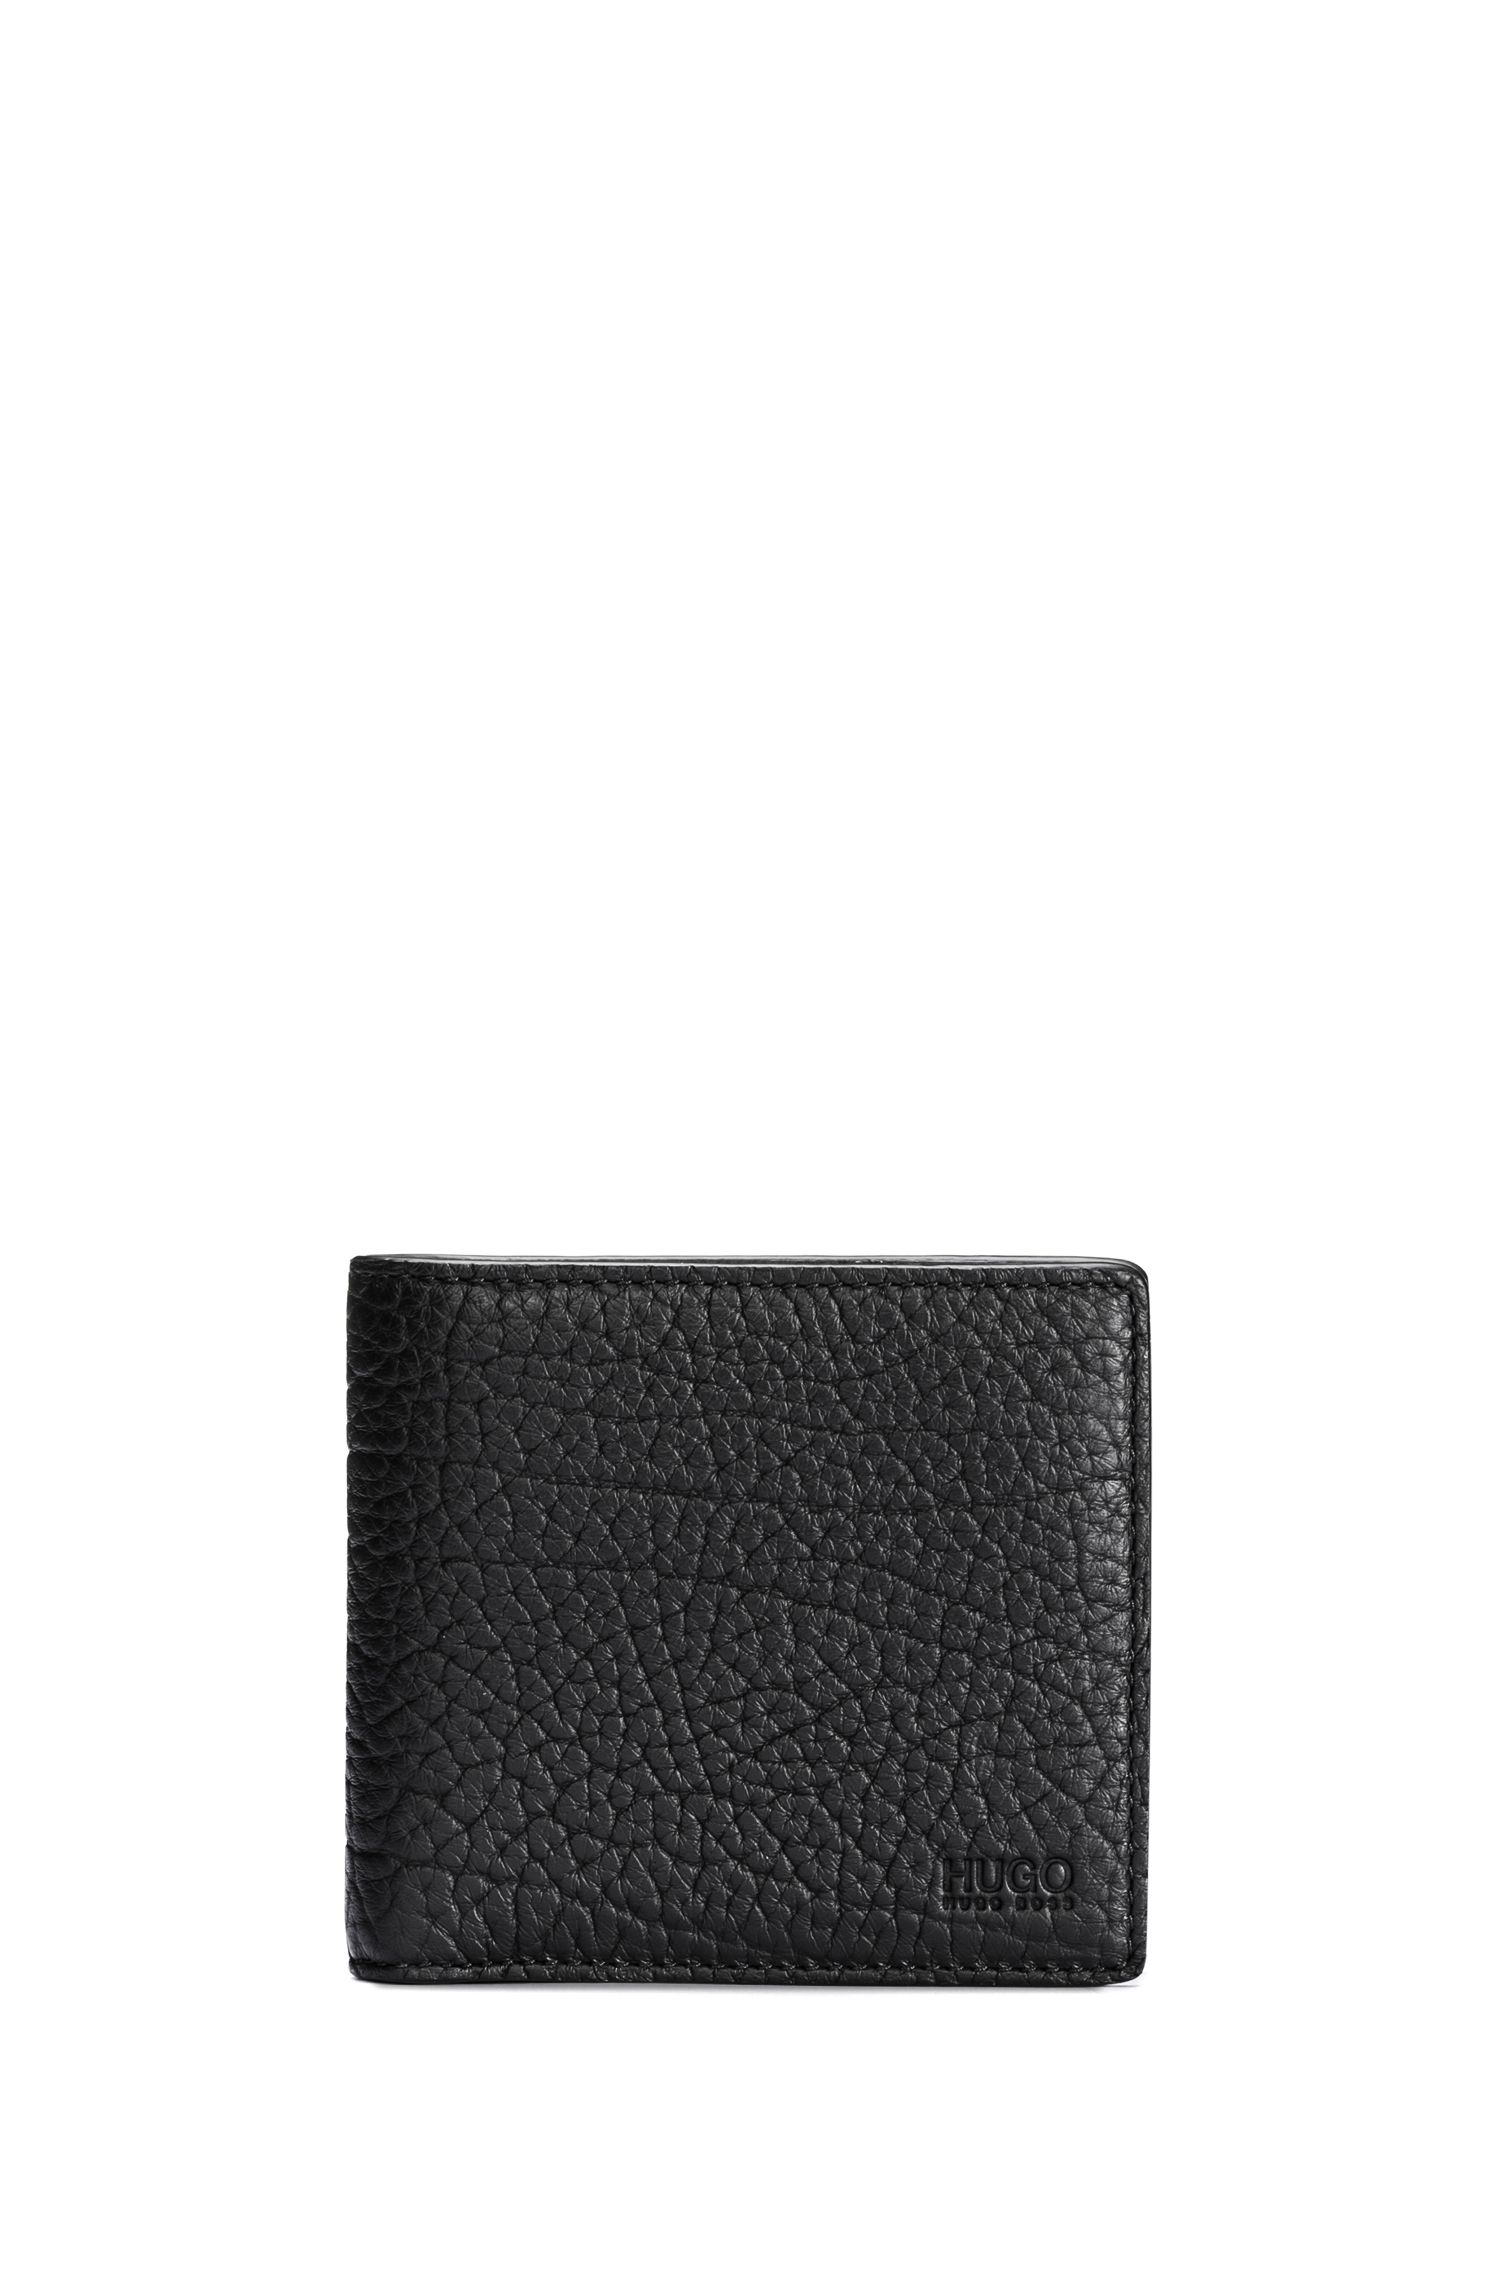 Grained leather billfold wallet with coin pocket